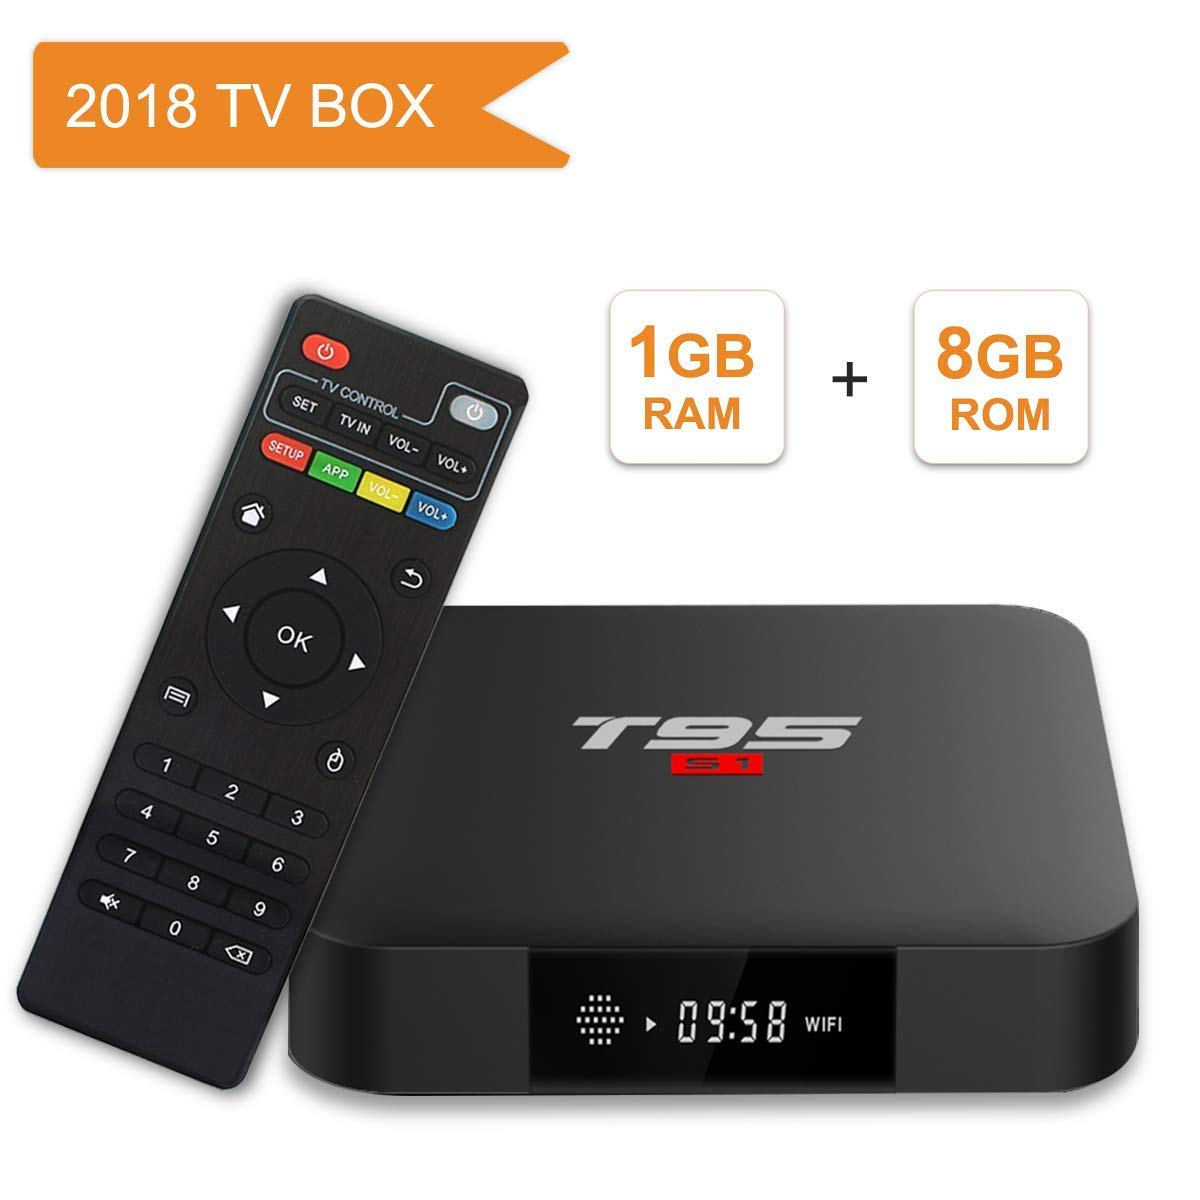 Android TV Box, T95 S1 Smart Box with 1GB RAM 8GB ROM Android 7.1 Amlogic S905W Quad core cortex-A53 Processor HDMI 2.0 H.265 2.4GHz WIFI 100M Ethernet YingFu